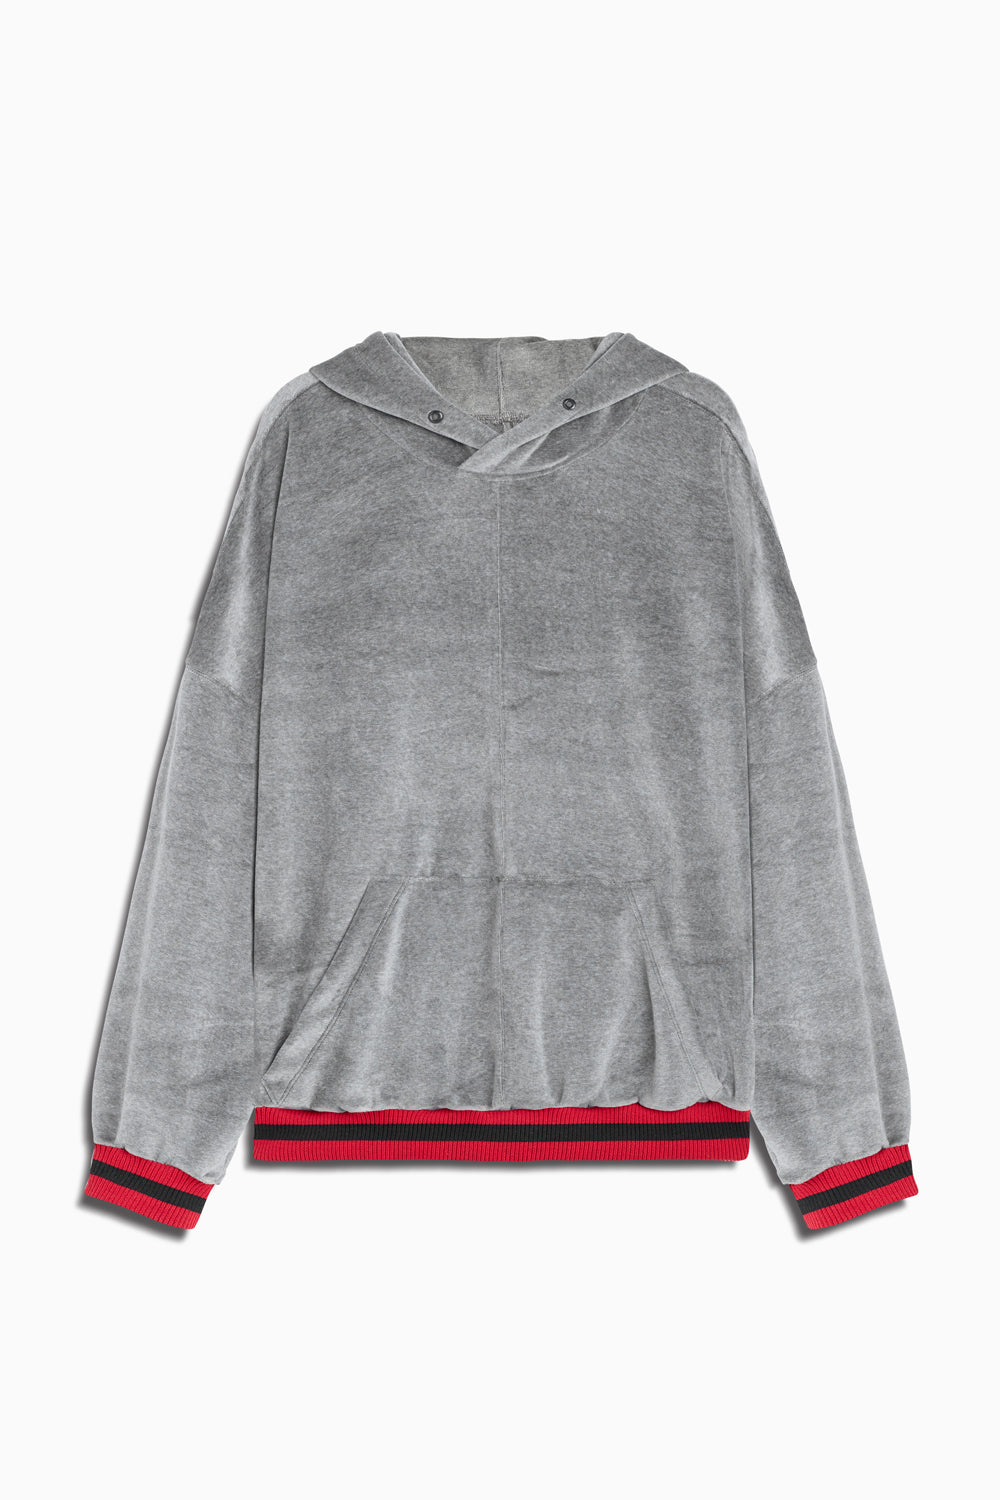 varsity velour hoodie in grey/red by daniel patrick